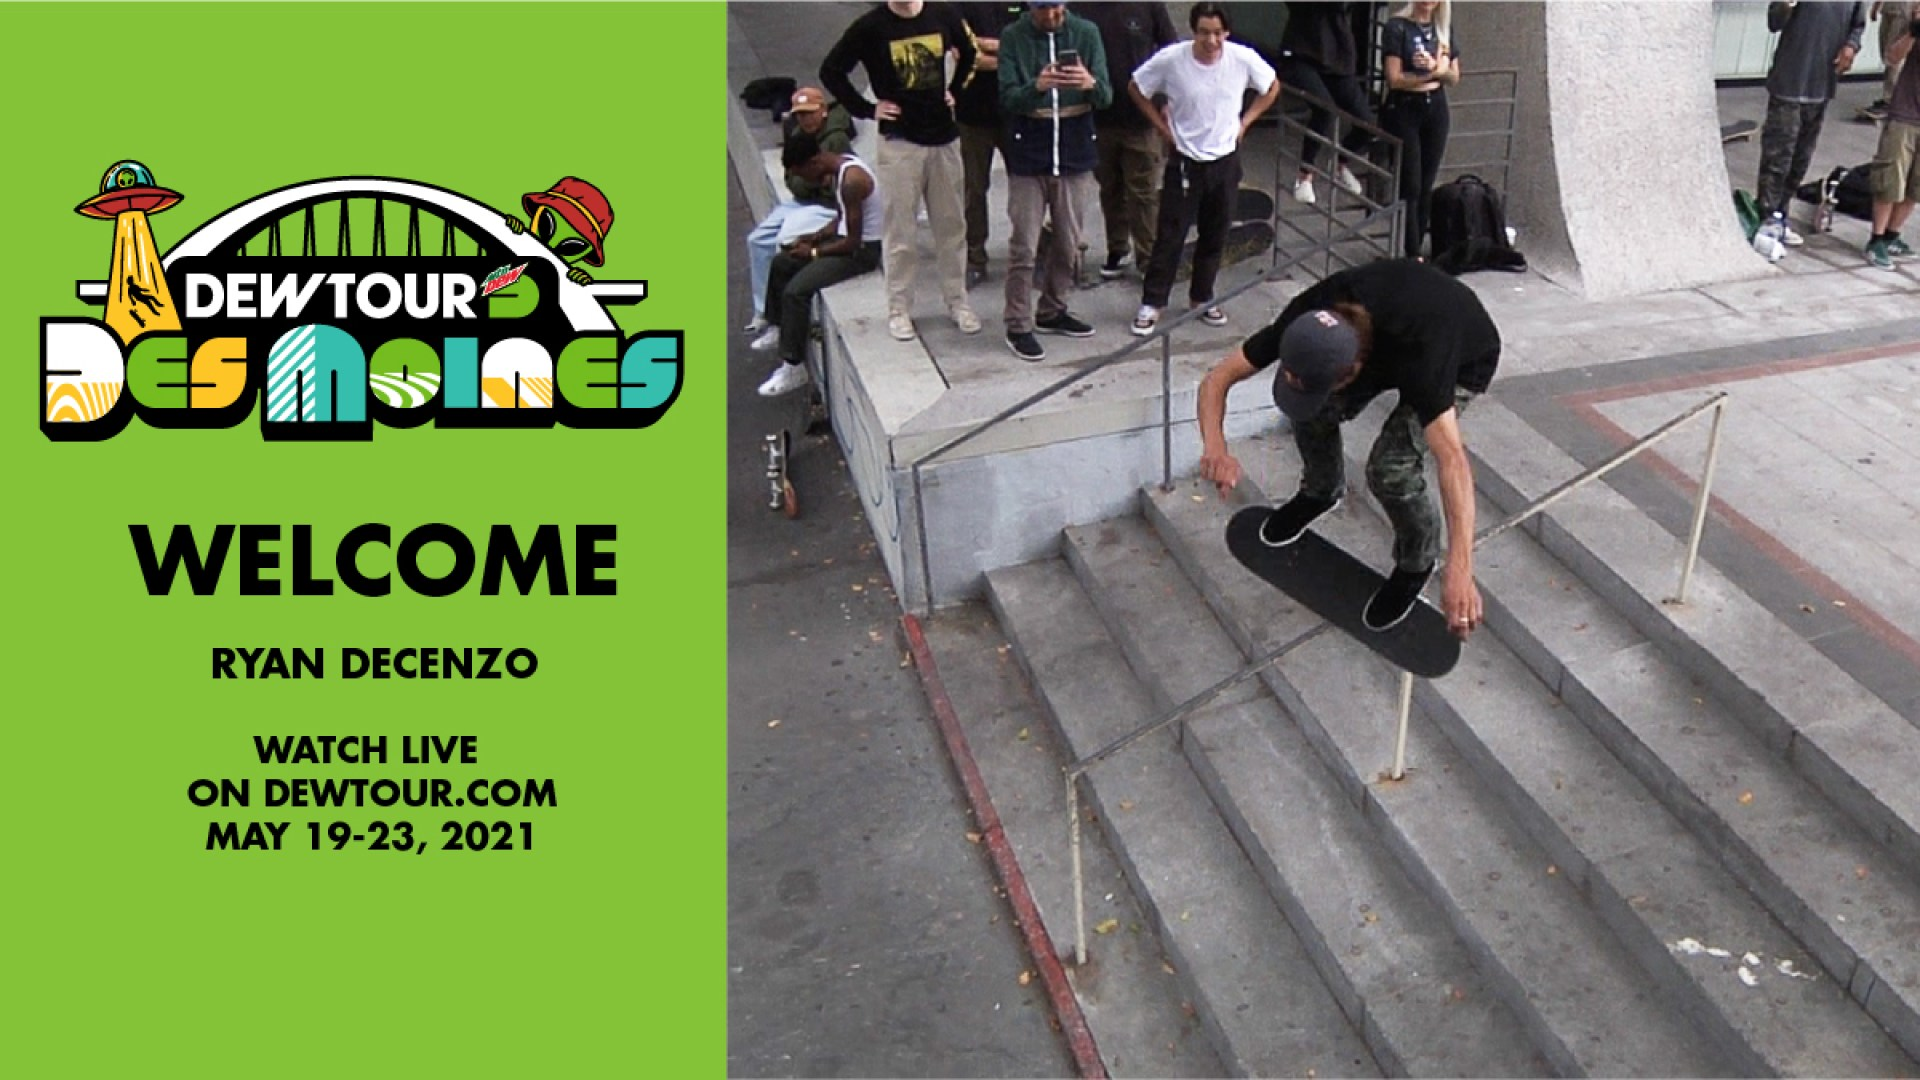 Ryan Decenzo: Welcome to the Men's Street Competition | 2021 Dew Tour Des Moines